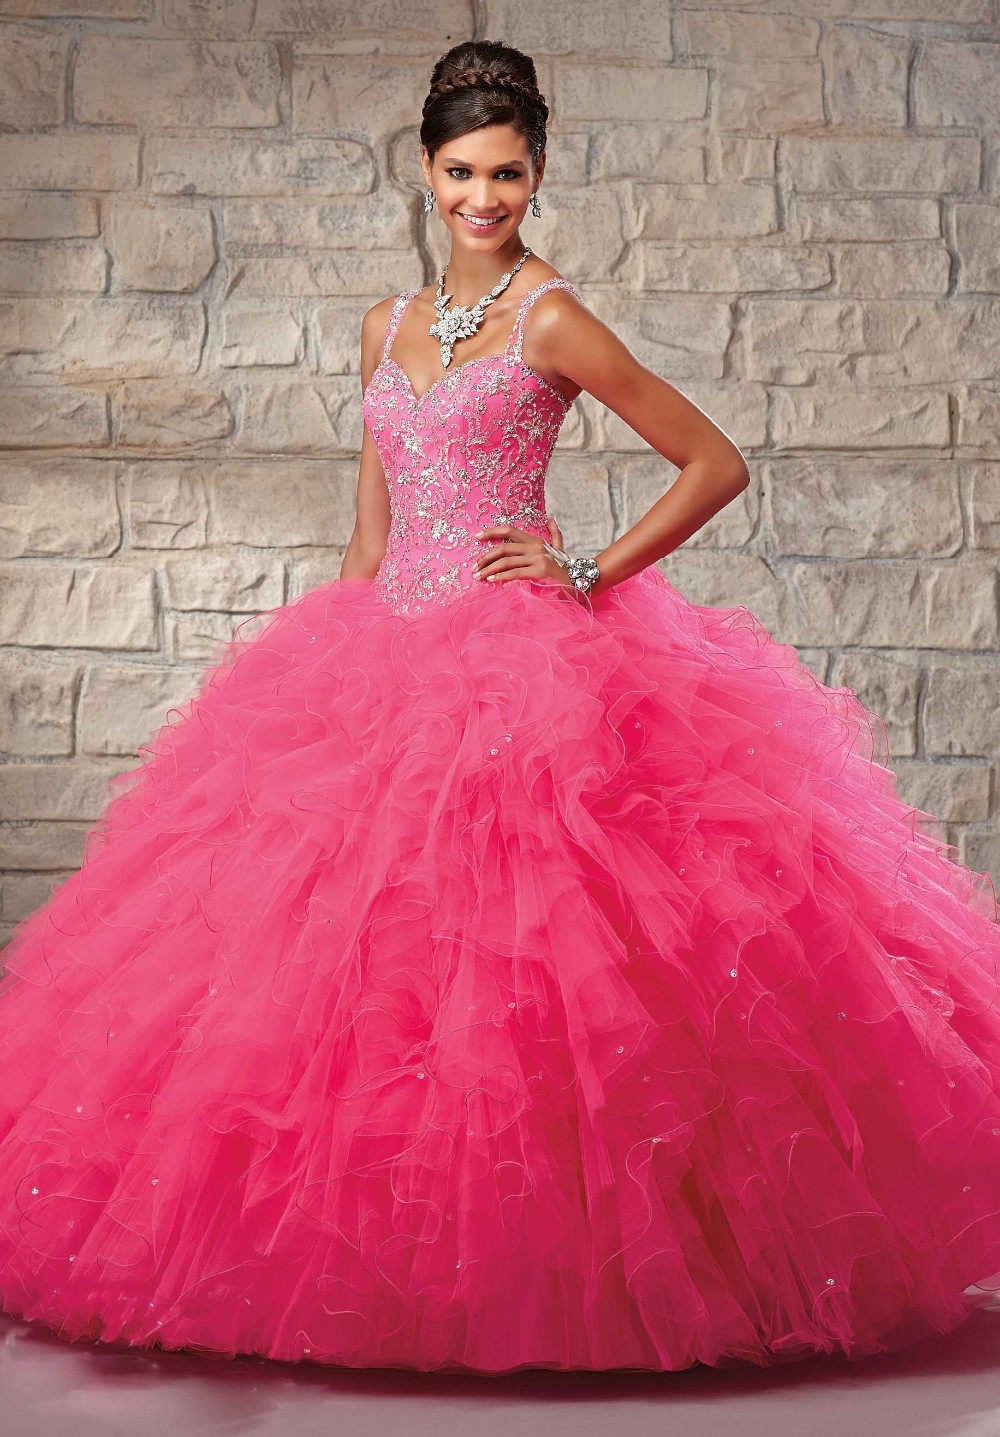 Compare Prices on Fuchsia Quinceanera Dresses- Online Shopping/Buy ...